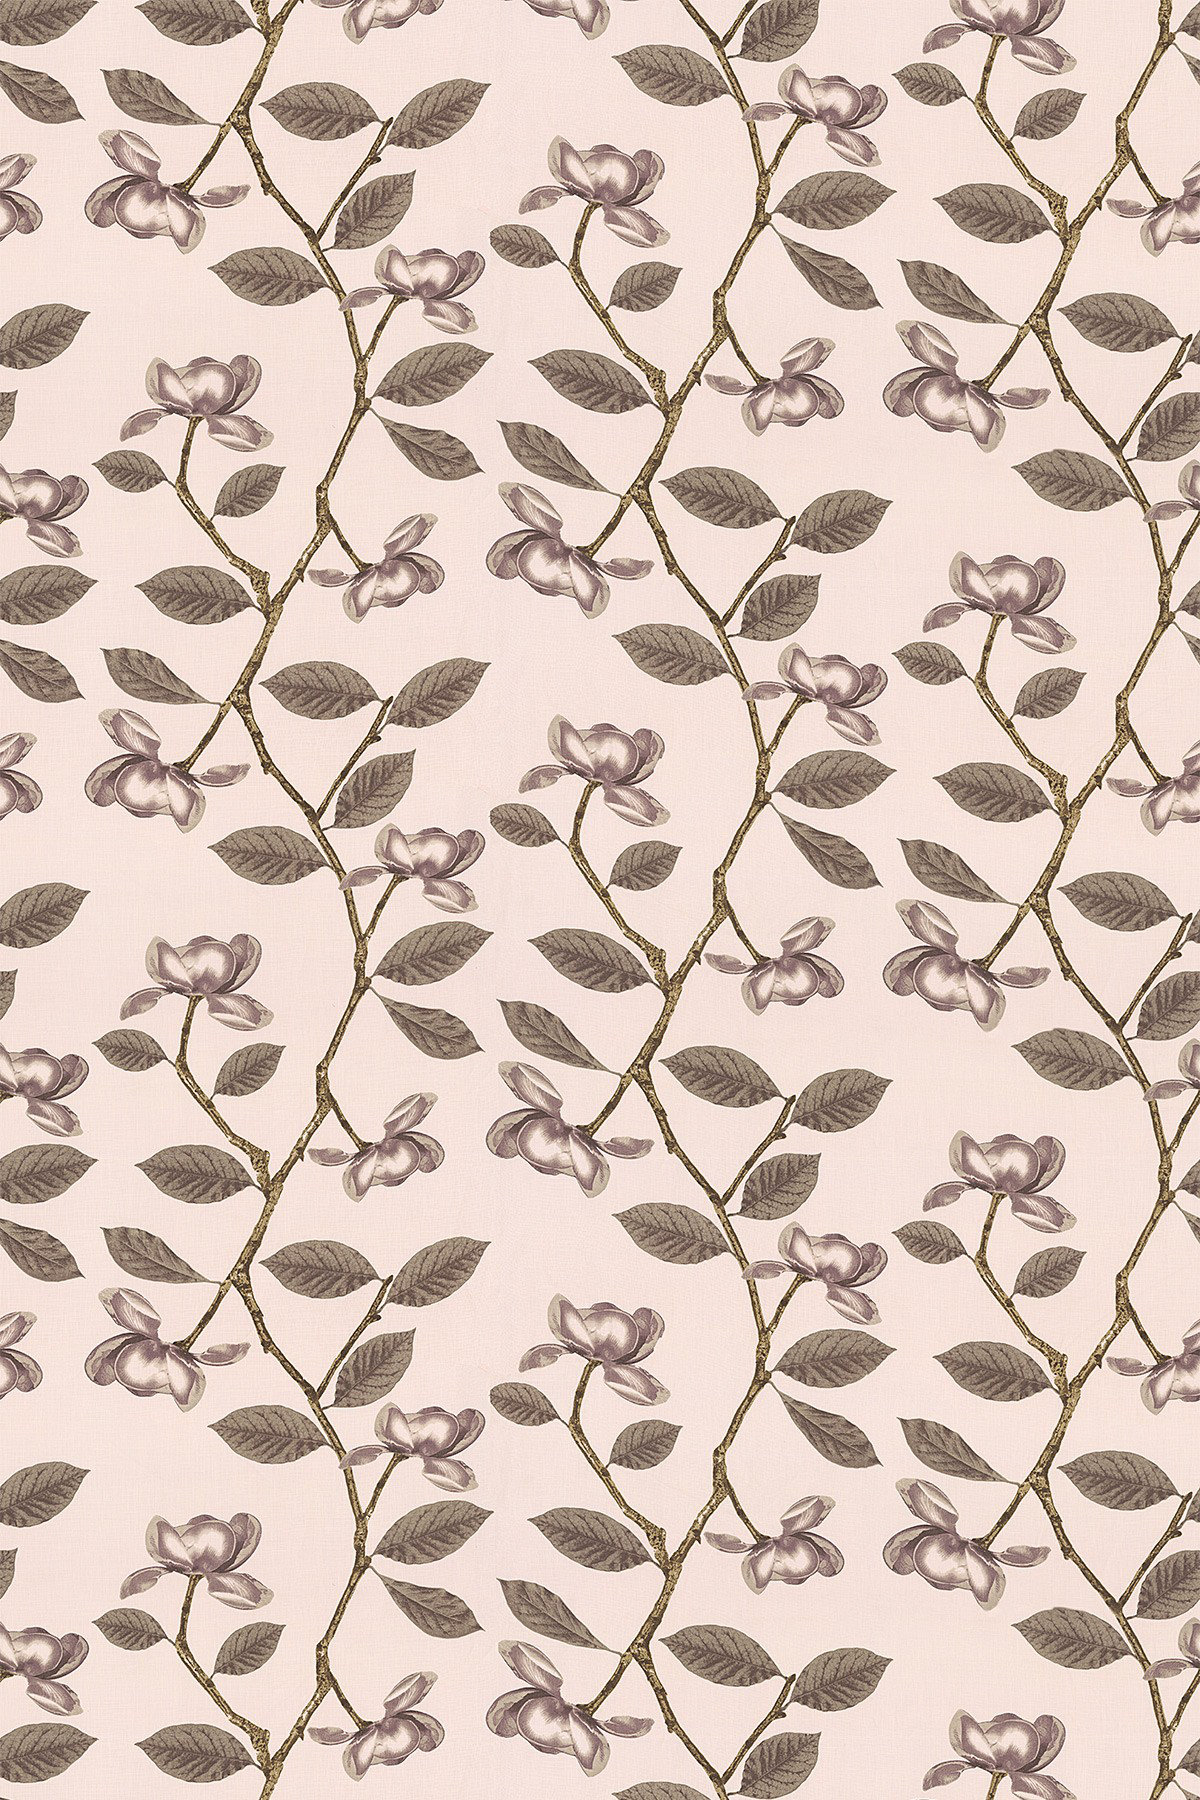 Image of Jocelyn Warner Fabric Flora, JWF-901